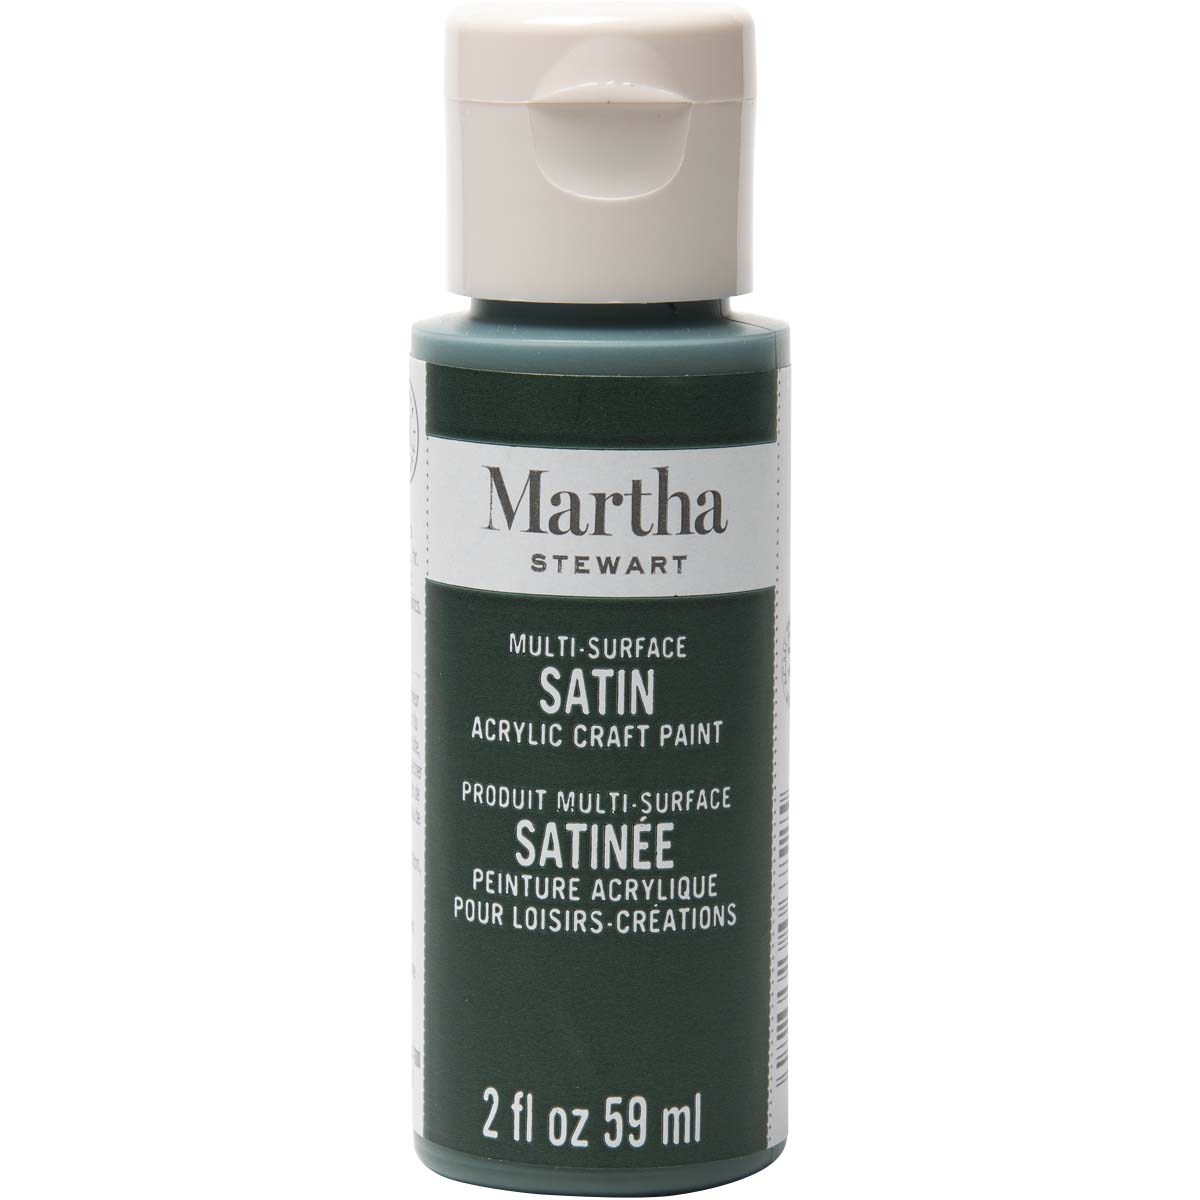 Martha Stewart ® Multi-Surface Satin Acrylic Craft Paint - Seaweed, 2 oz. - 32001CA